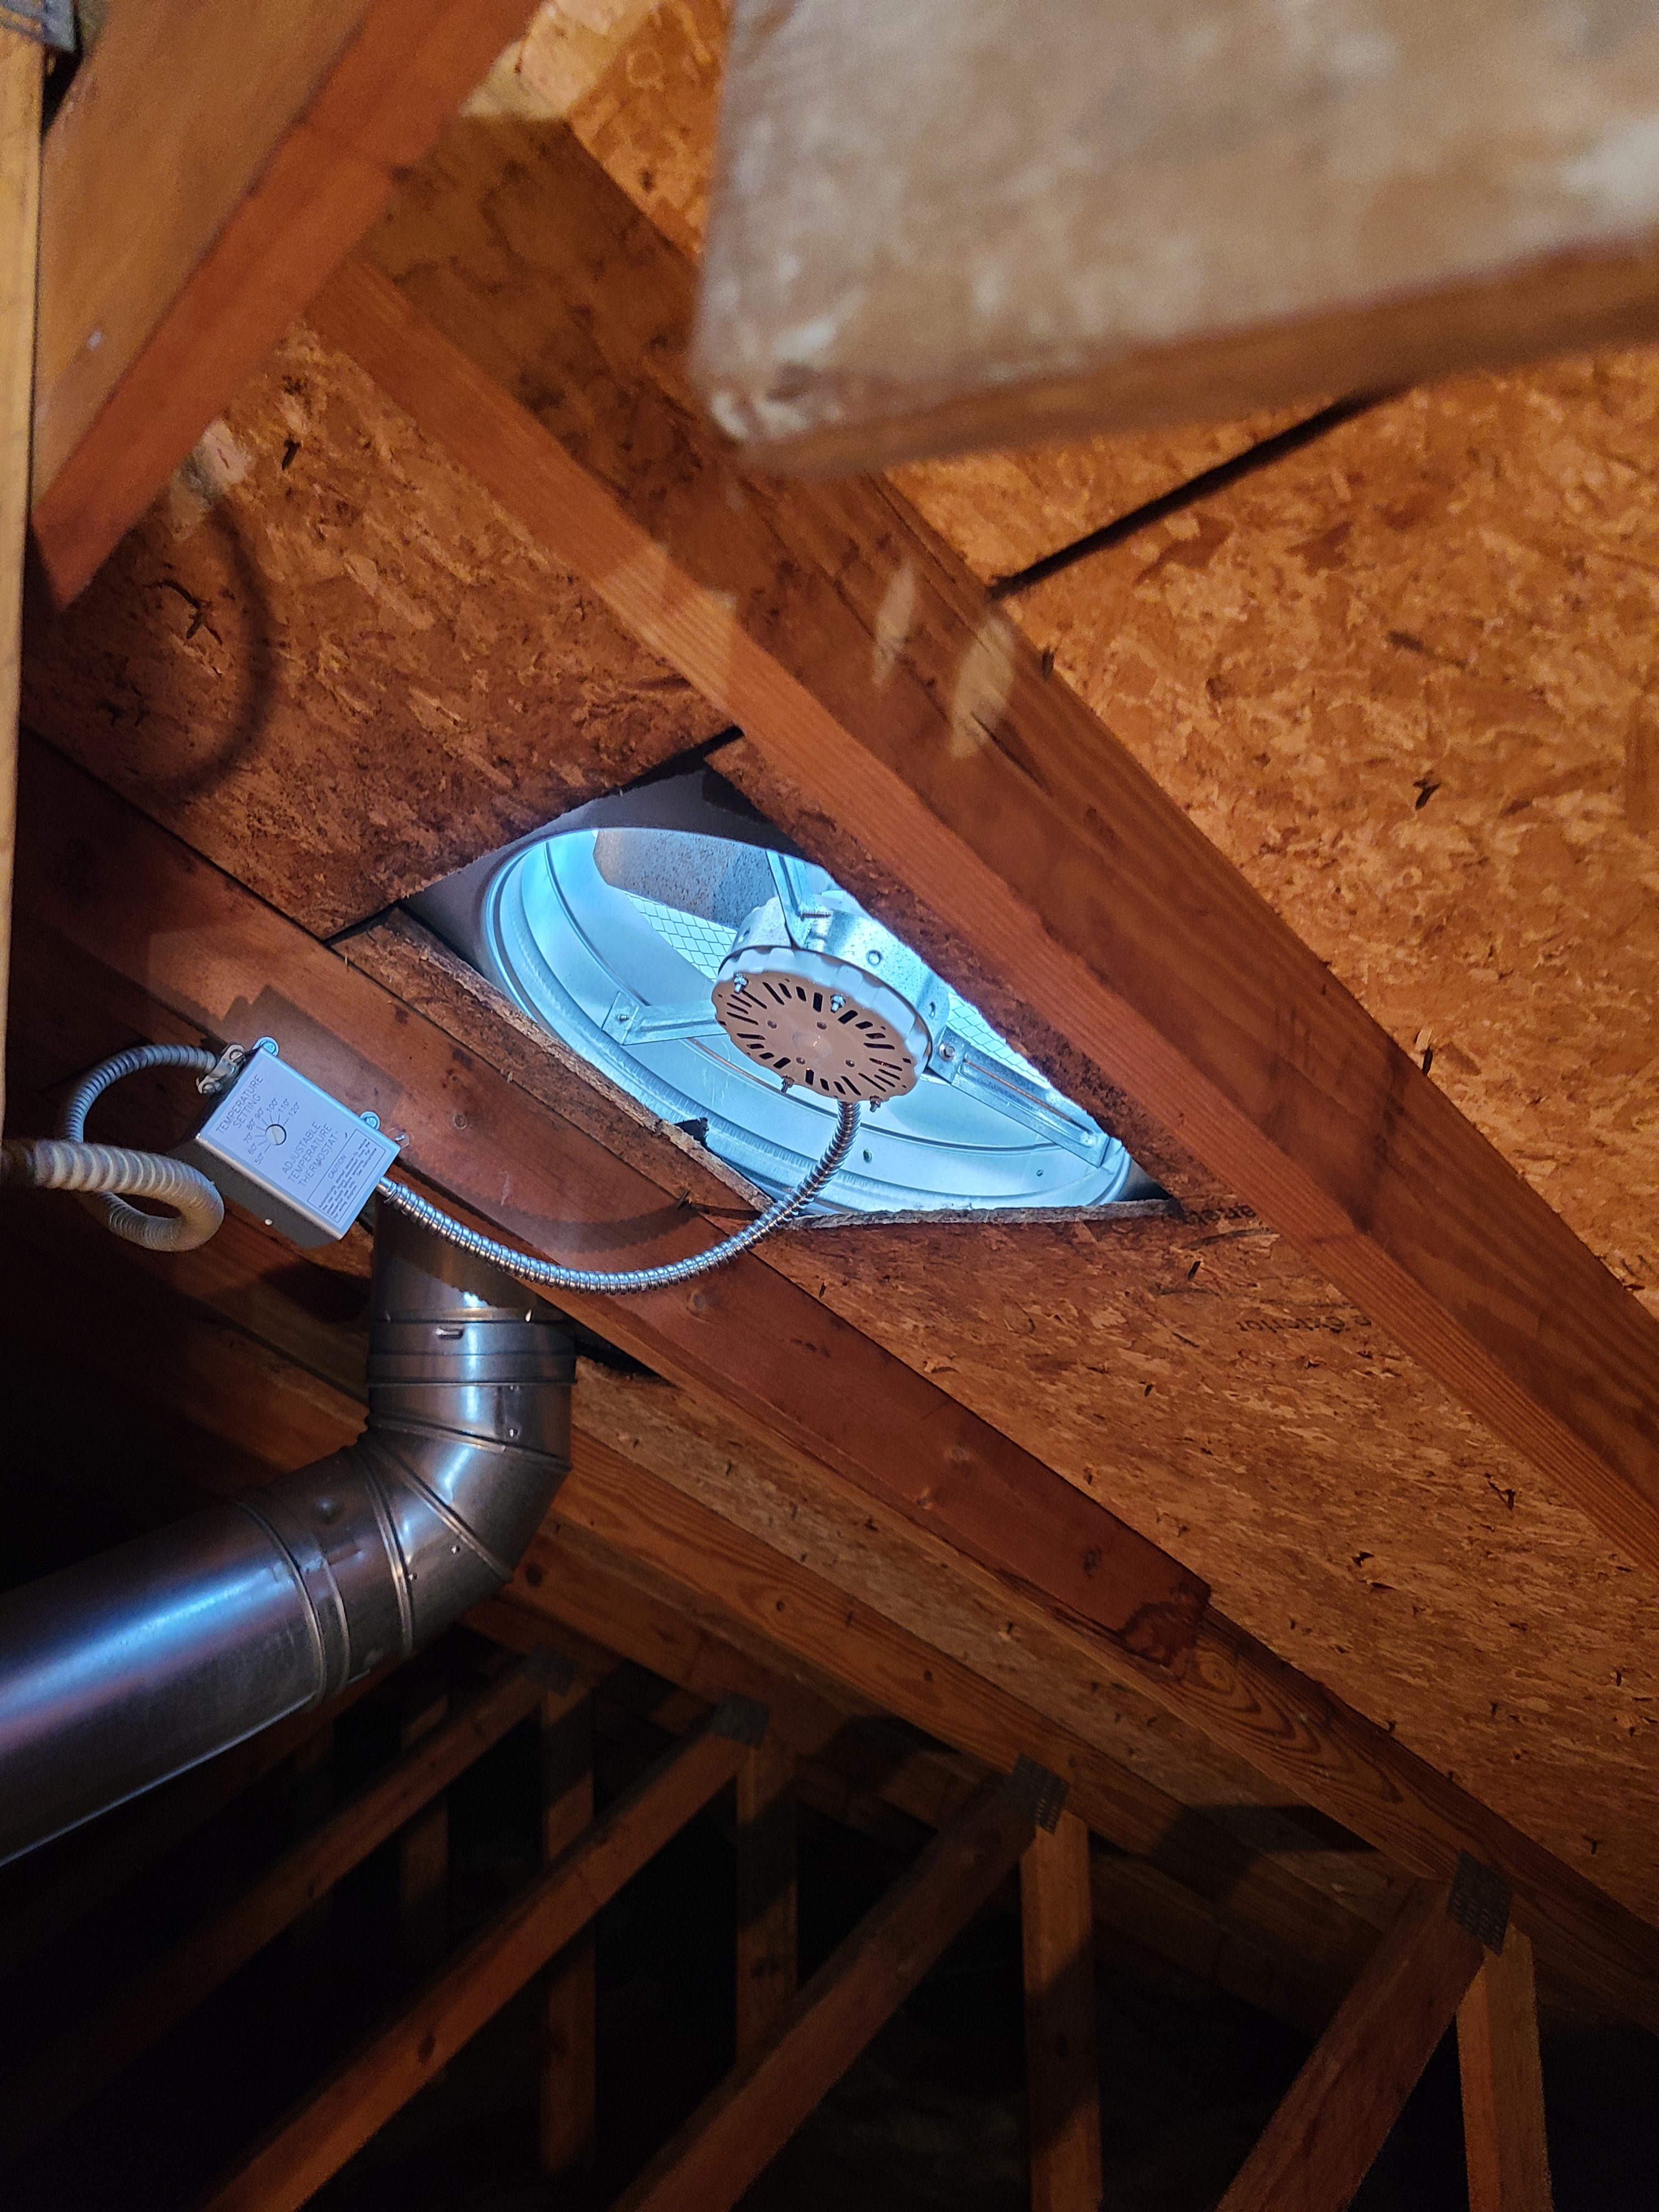 Removed faulty exhaust fan and replaced with new